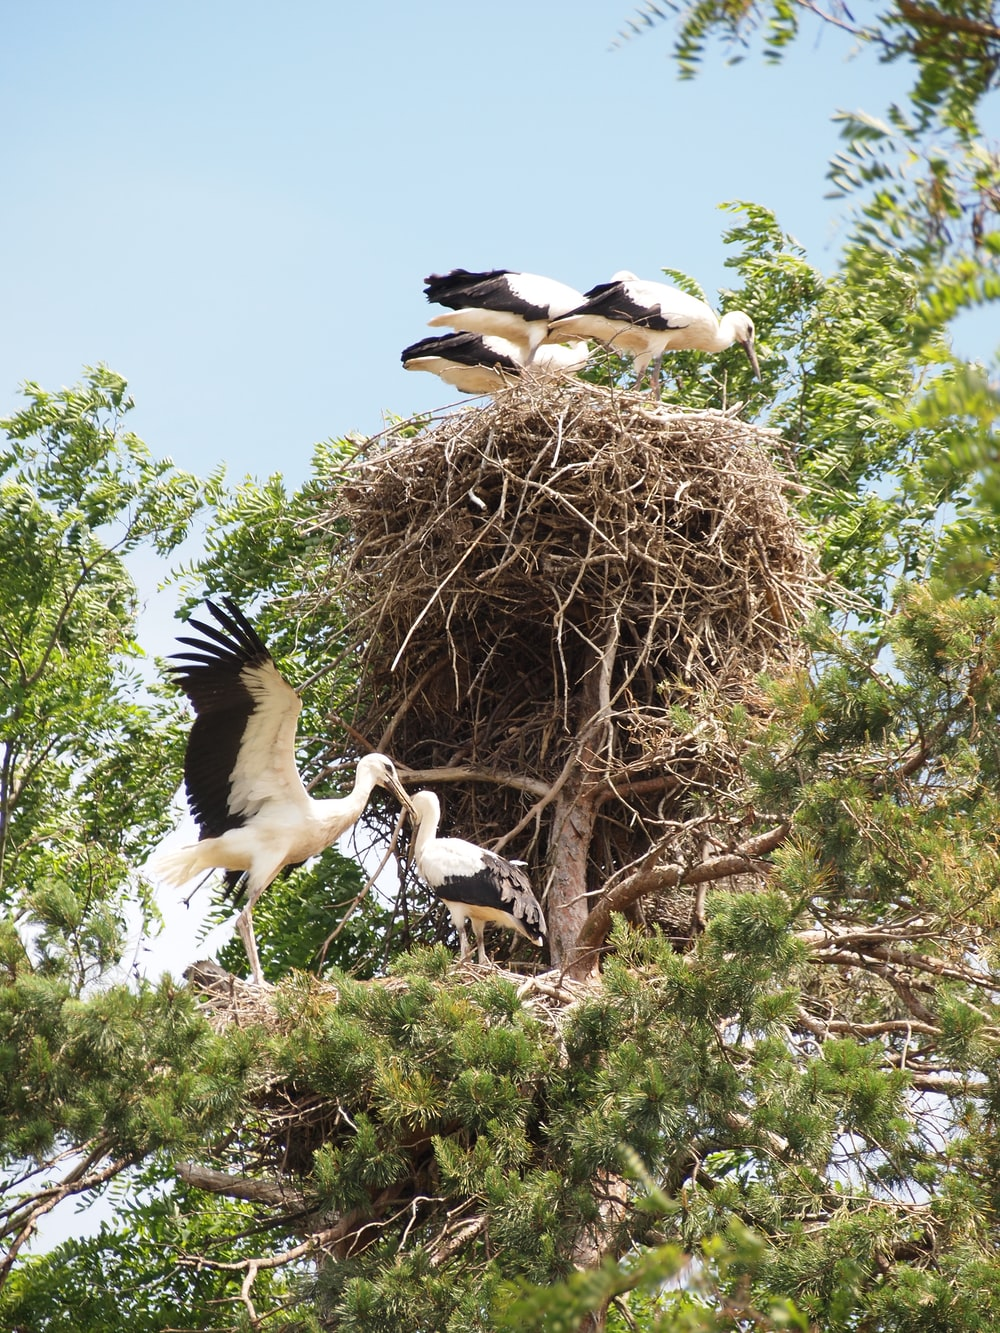 birds on tree branch and nest on tree